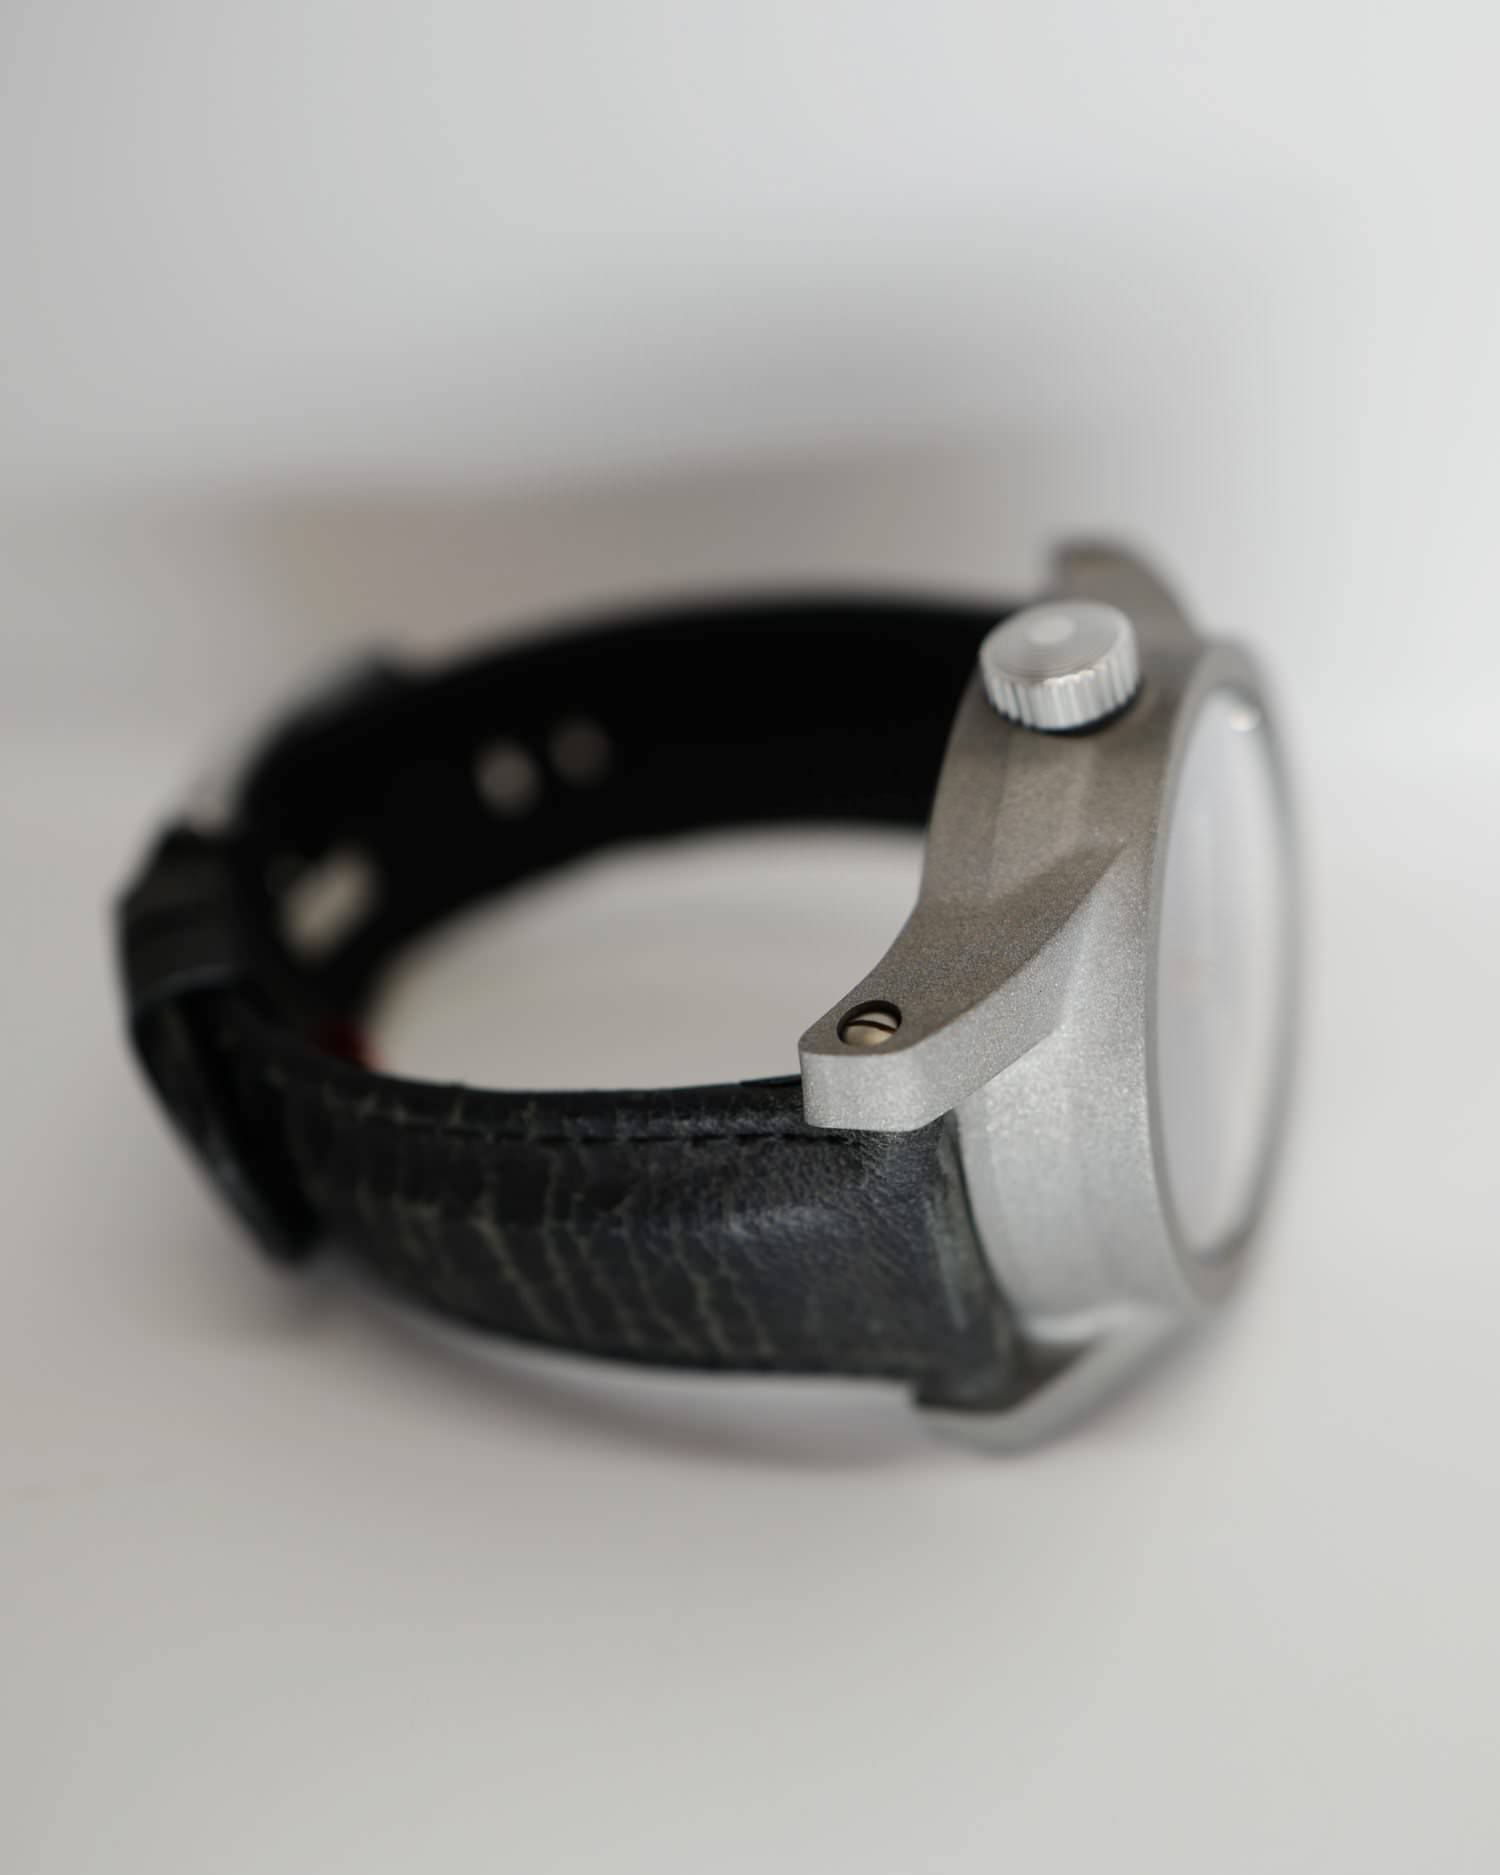 Beater Bare Bones dark grey dial with Tigerloaf Strap